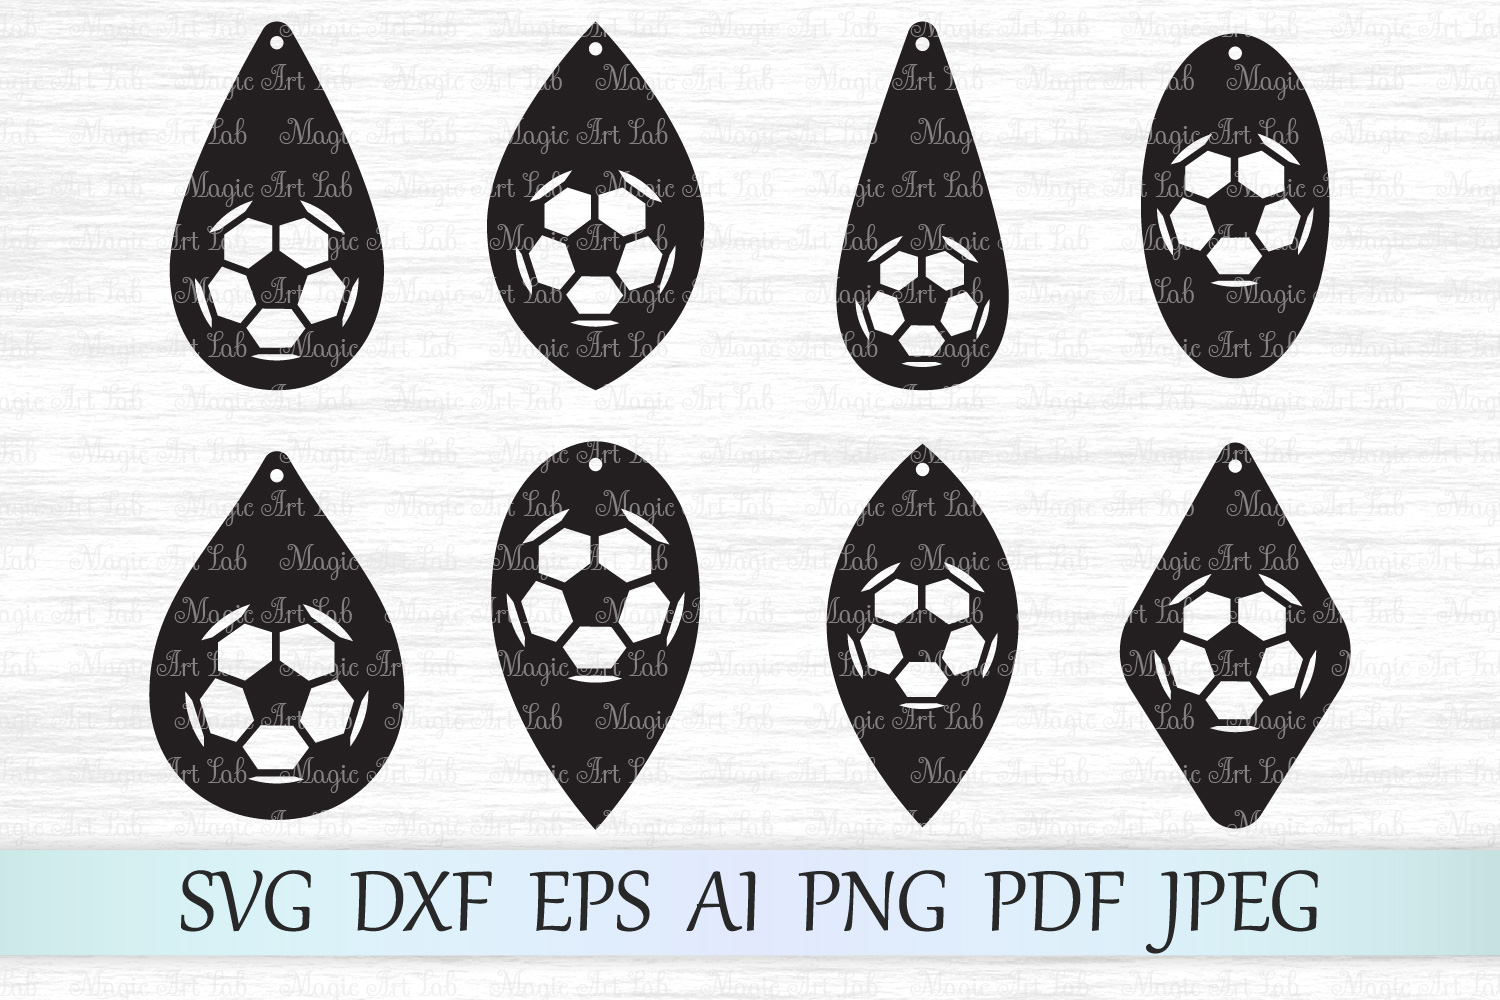 Download Free Soccer Earrings Svgs Graphic By Magicartlab Creative Fabrica for Cricut Explore, Silhouette and other cutting machines.